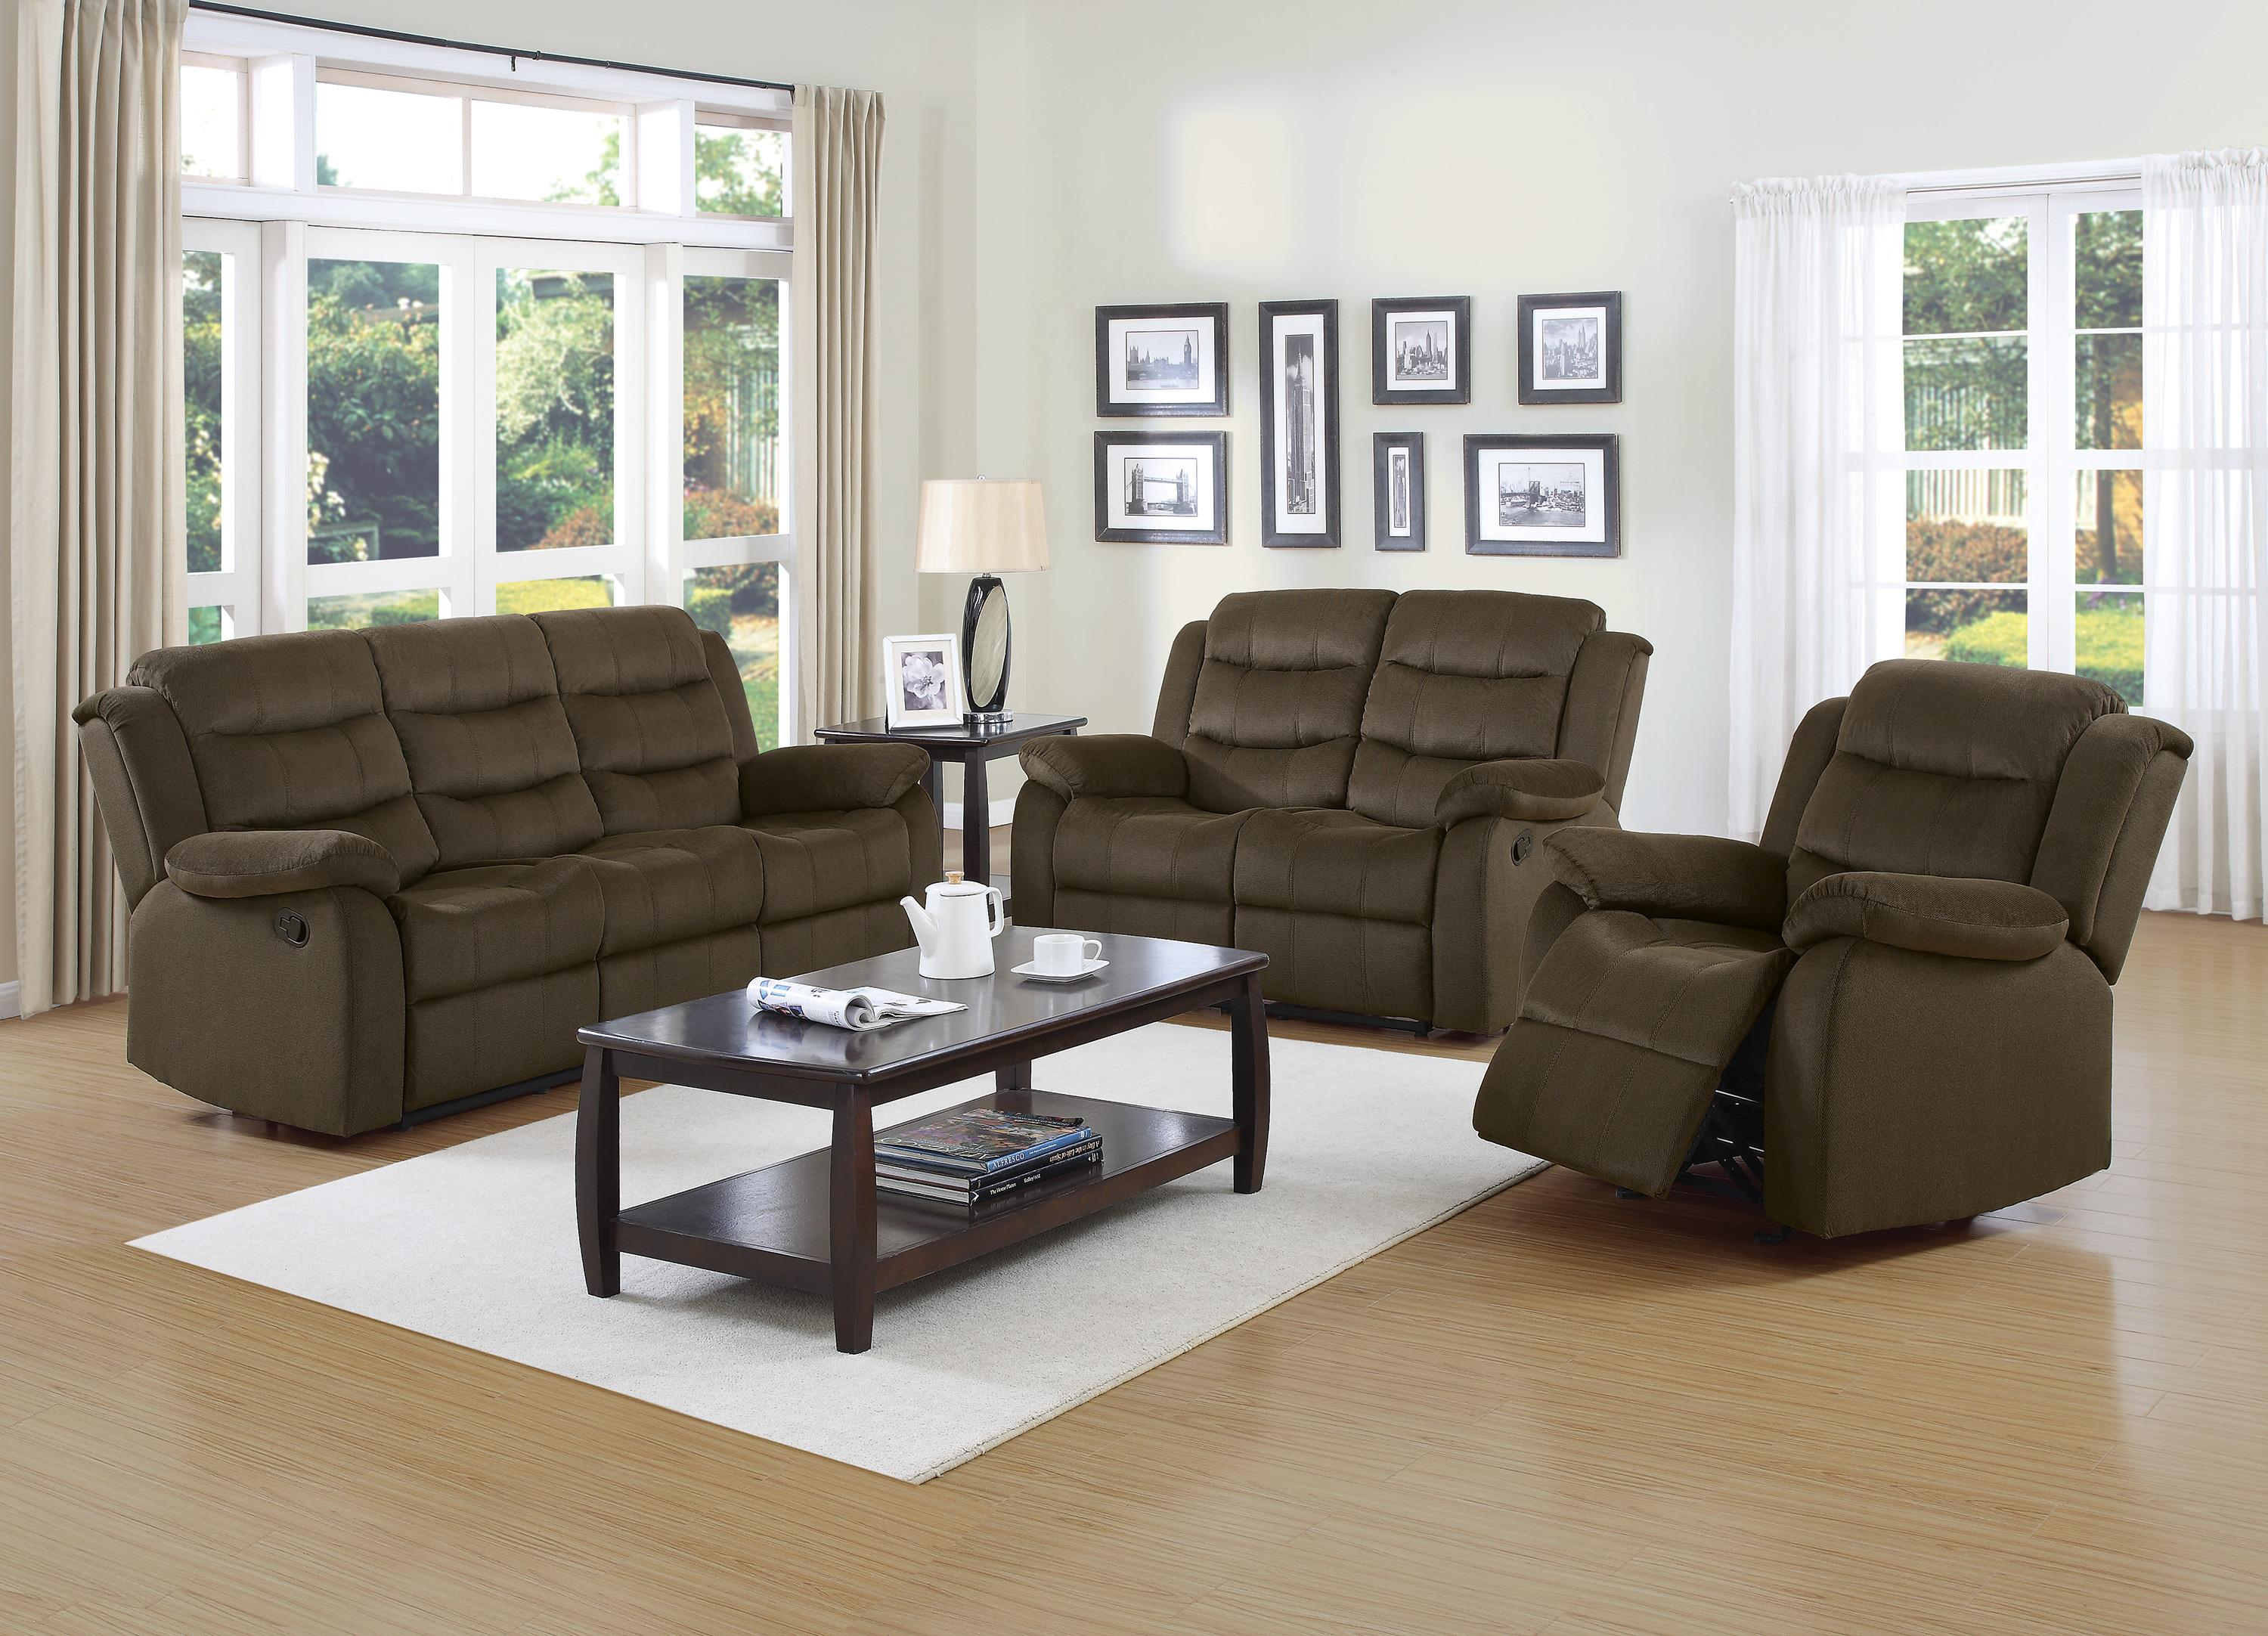 image woptions sofa w transitional loveseat set options and sets fabric sage p